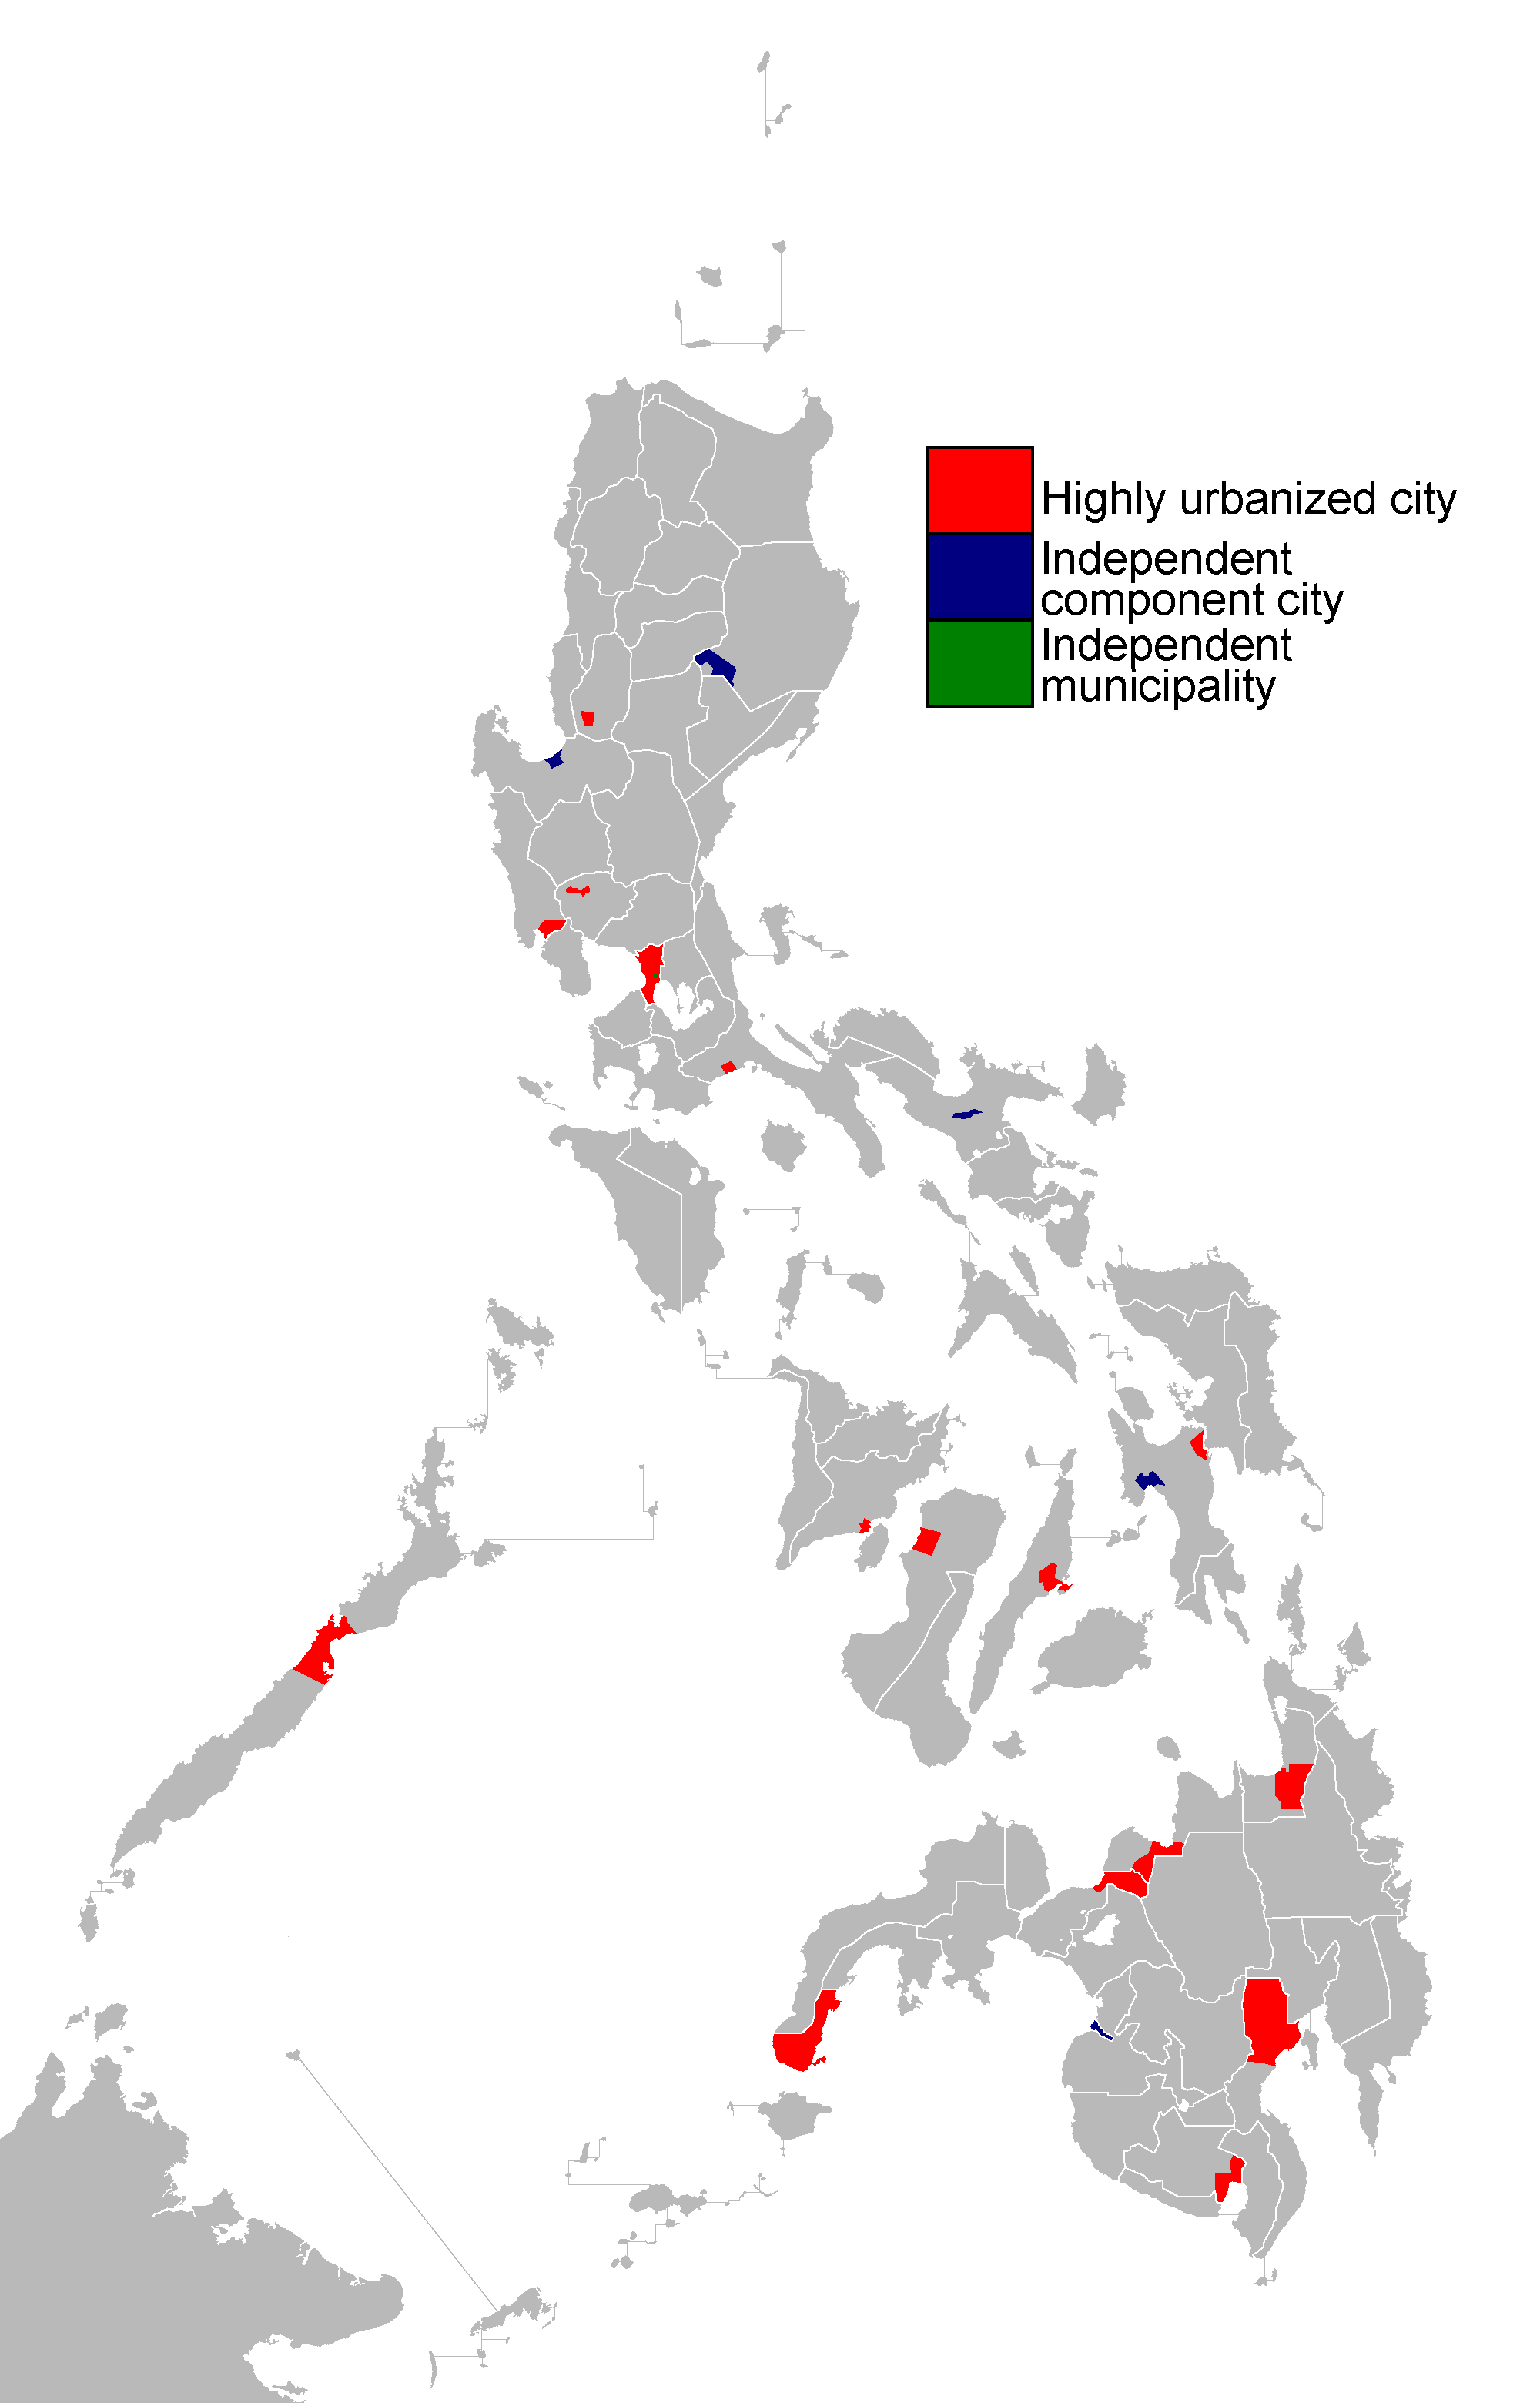 FileMap Of Independent Cities In The Philippinespng Wikimedia - Map of the philippines cities